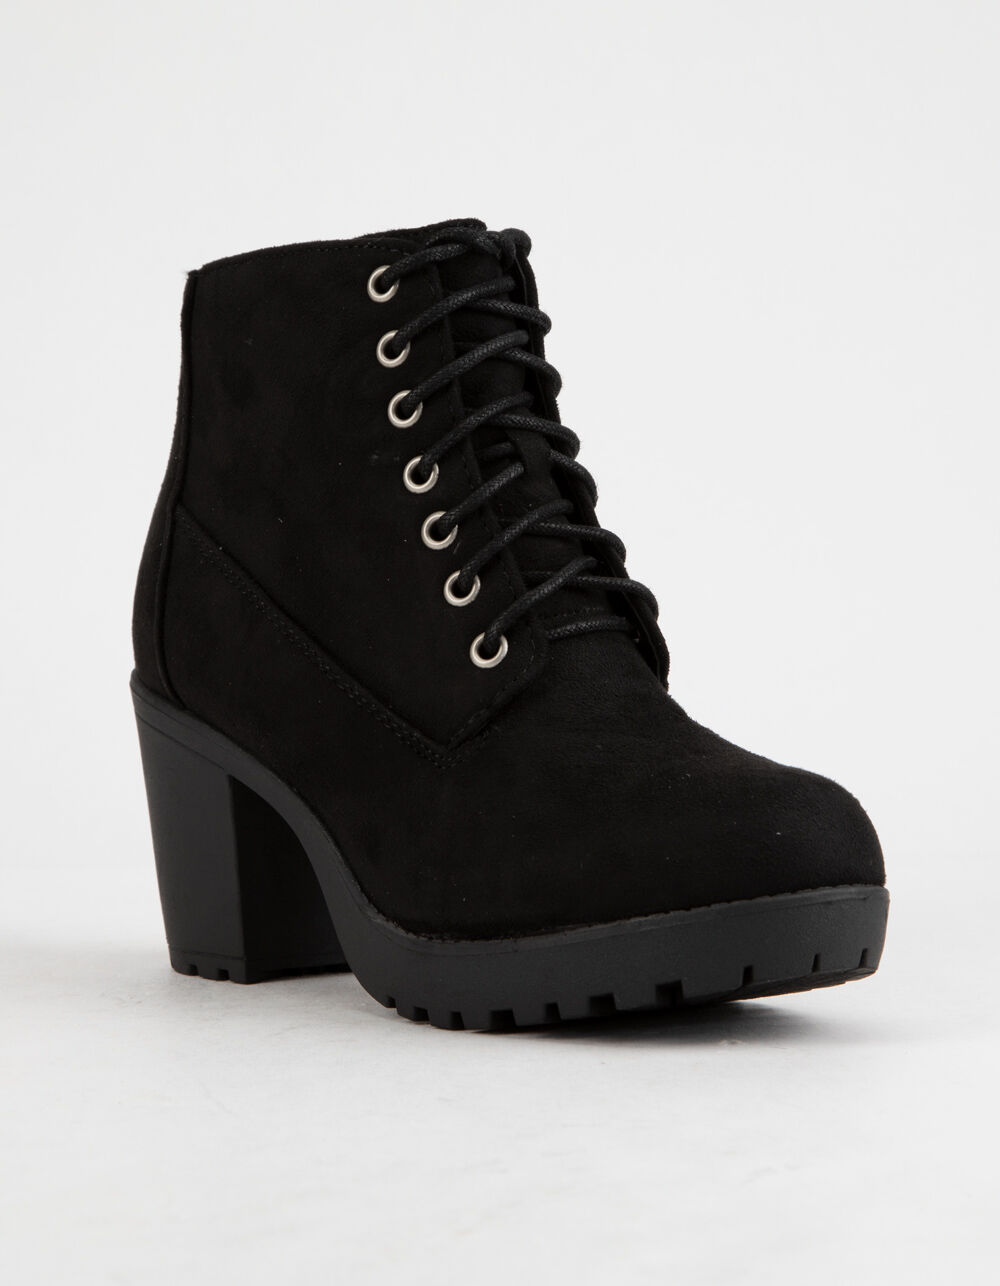 SODA Lug Sole Lace Up Black Booties